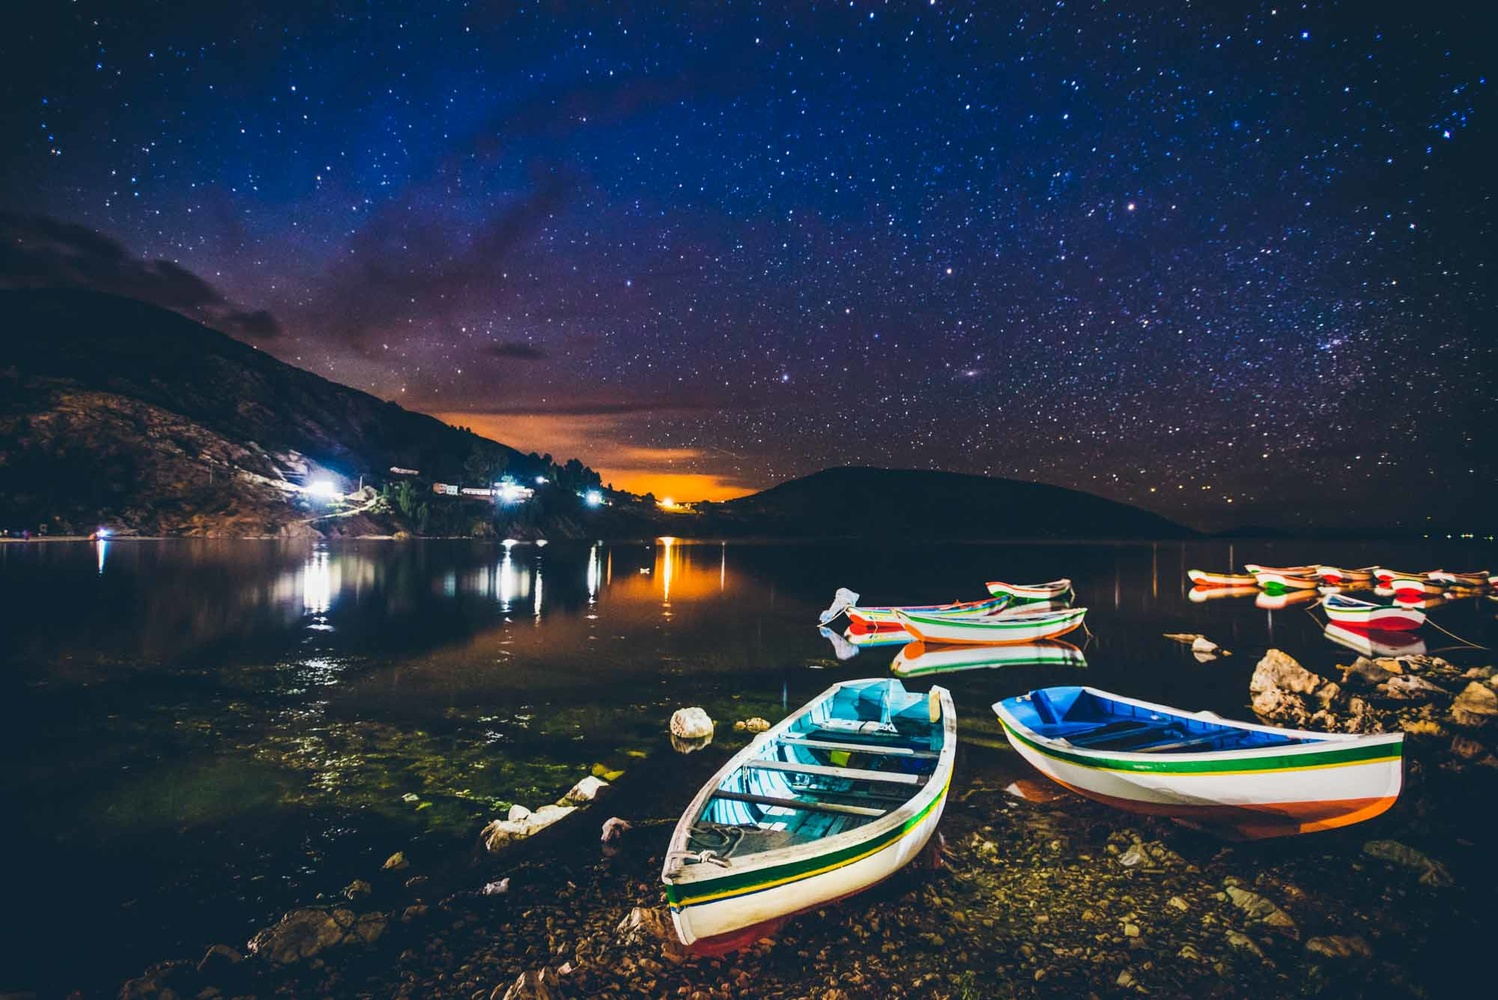 Light-painted rowboats on the Isla del Sol in Lake Titicaca, Bolivia, 2014. After shooting a wedding just after the new year, I spent four weeks traveling, my first intentionally solo trip.